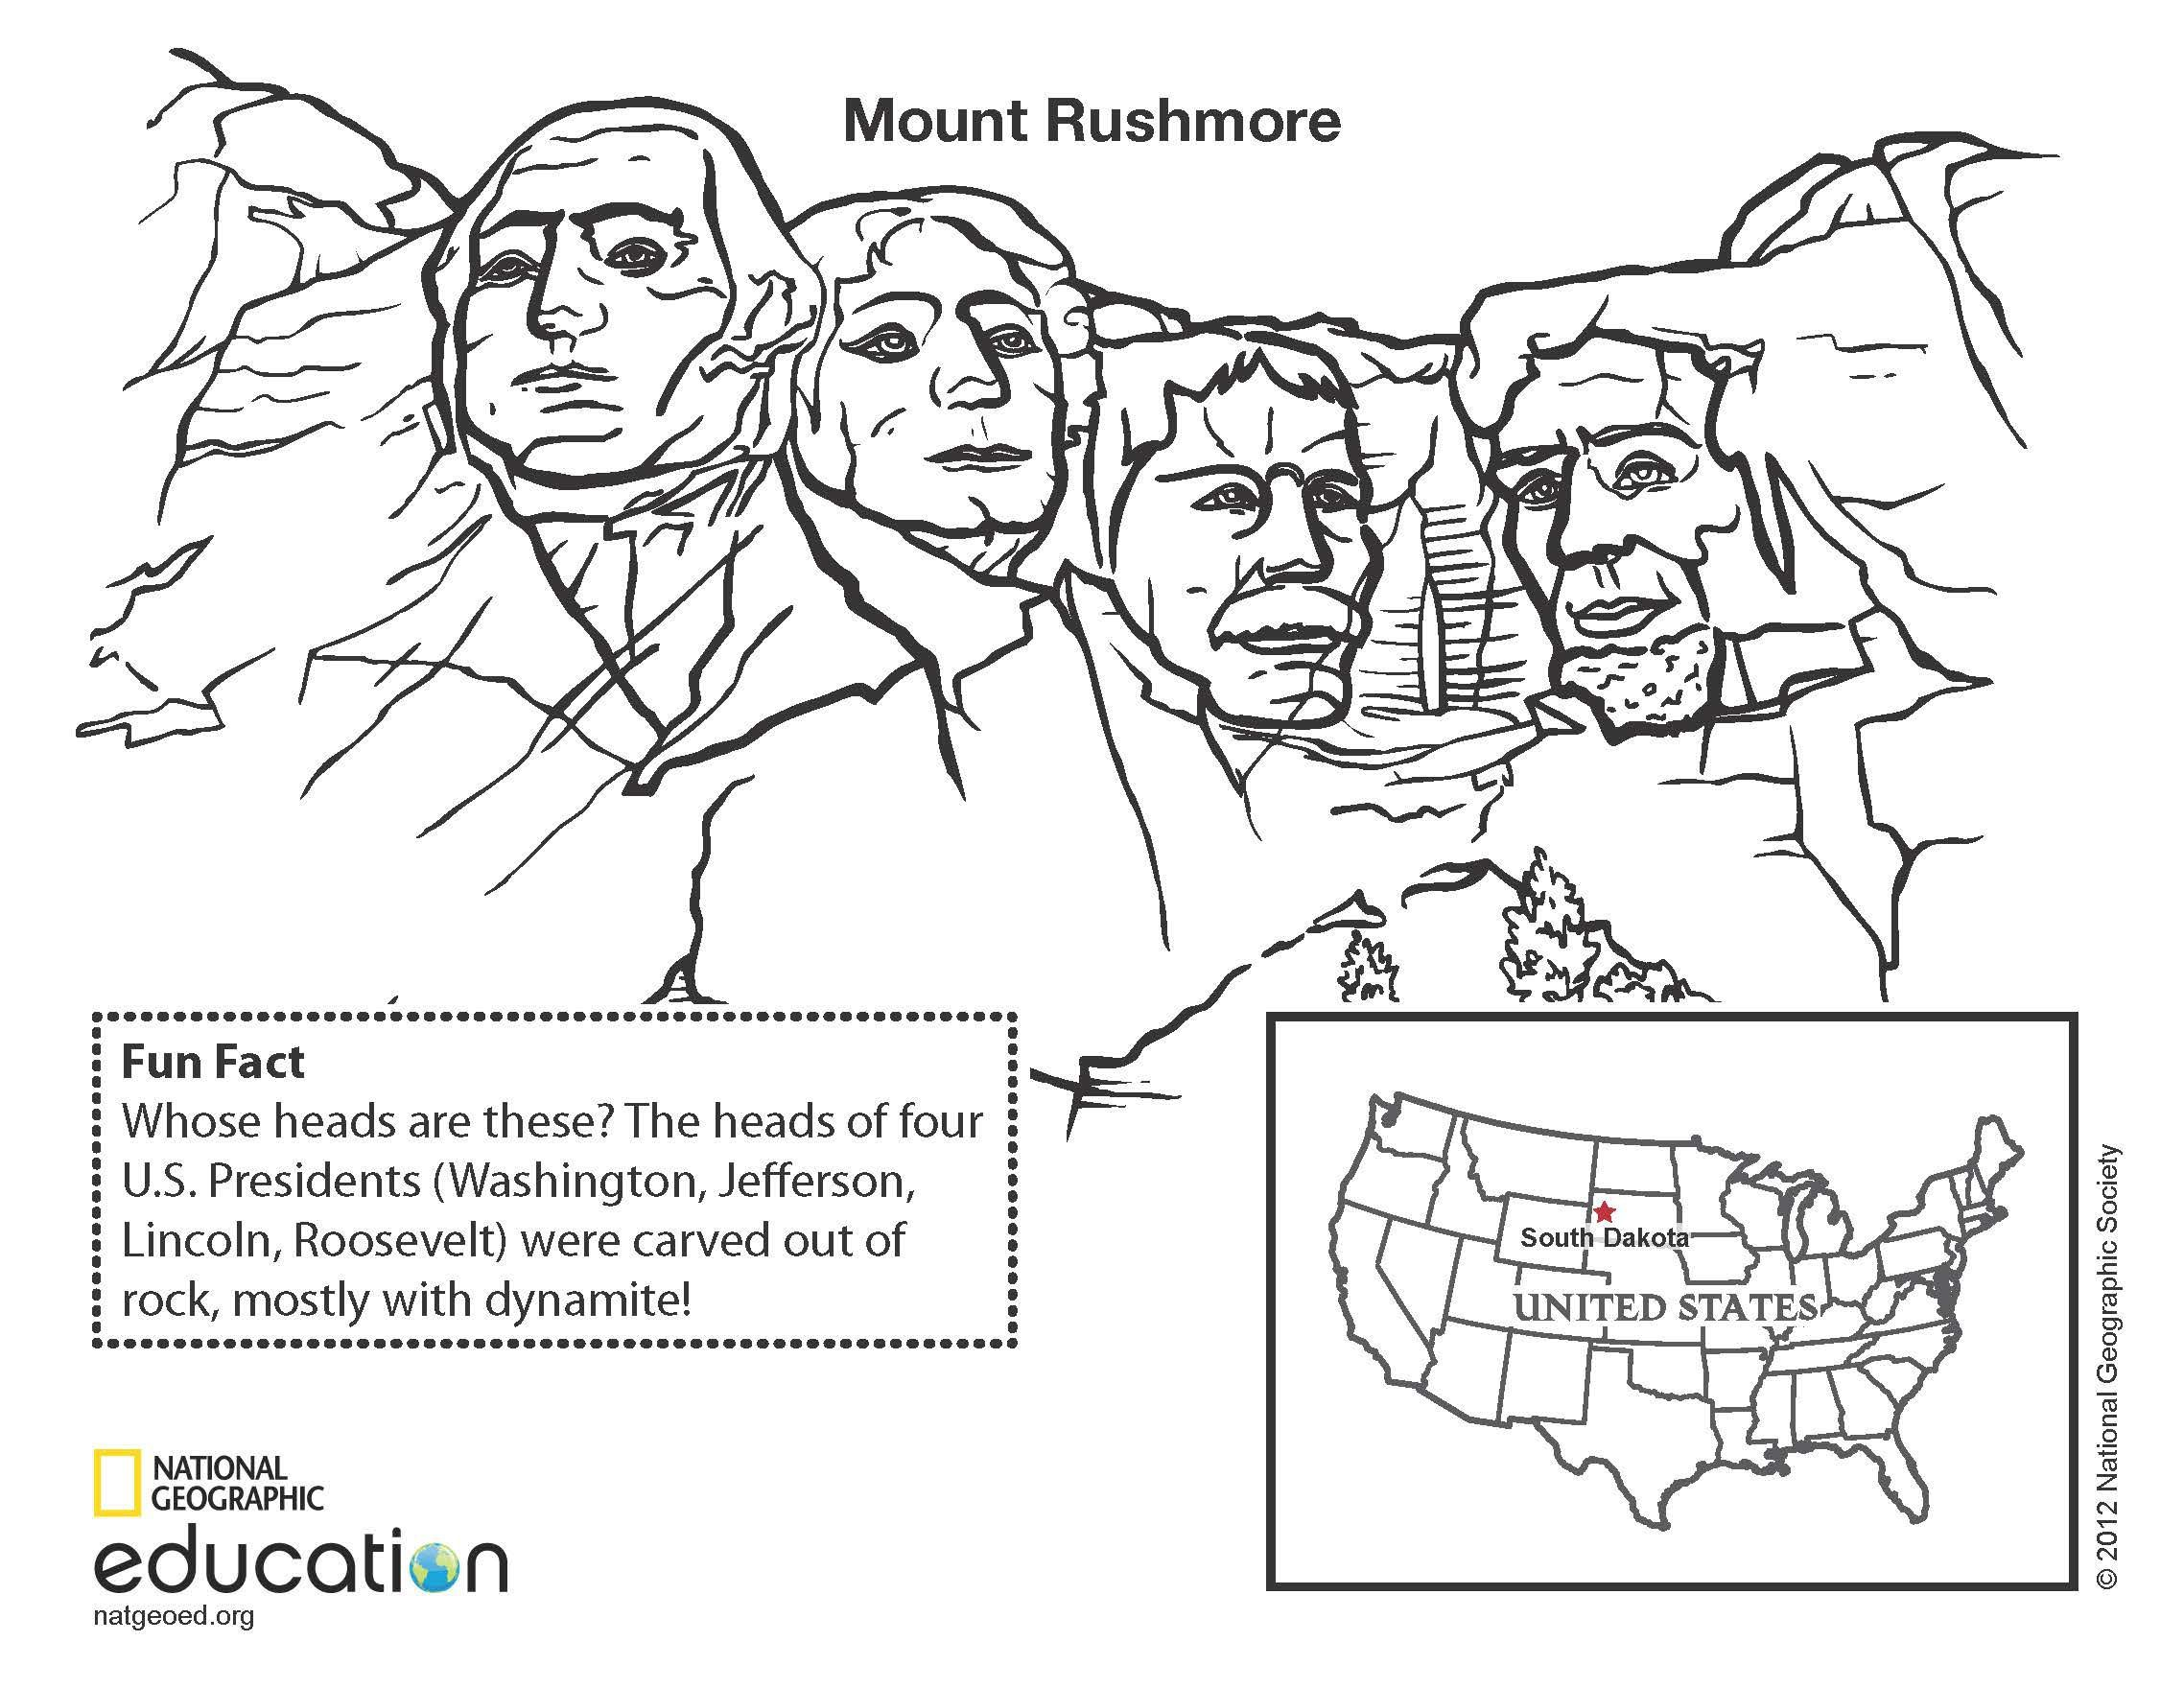 Download And Print This Coloring Page Of A Famous United States